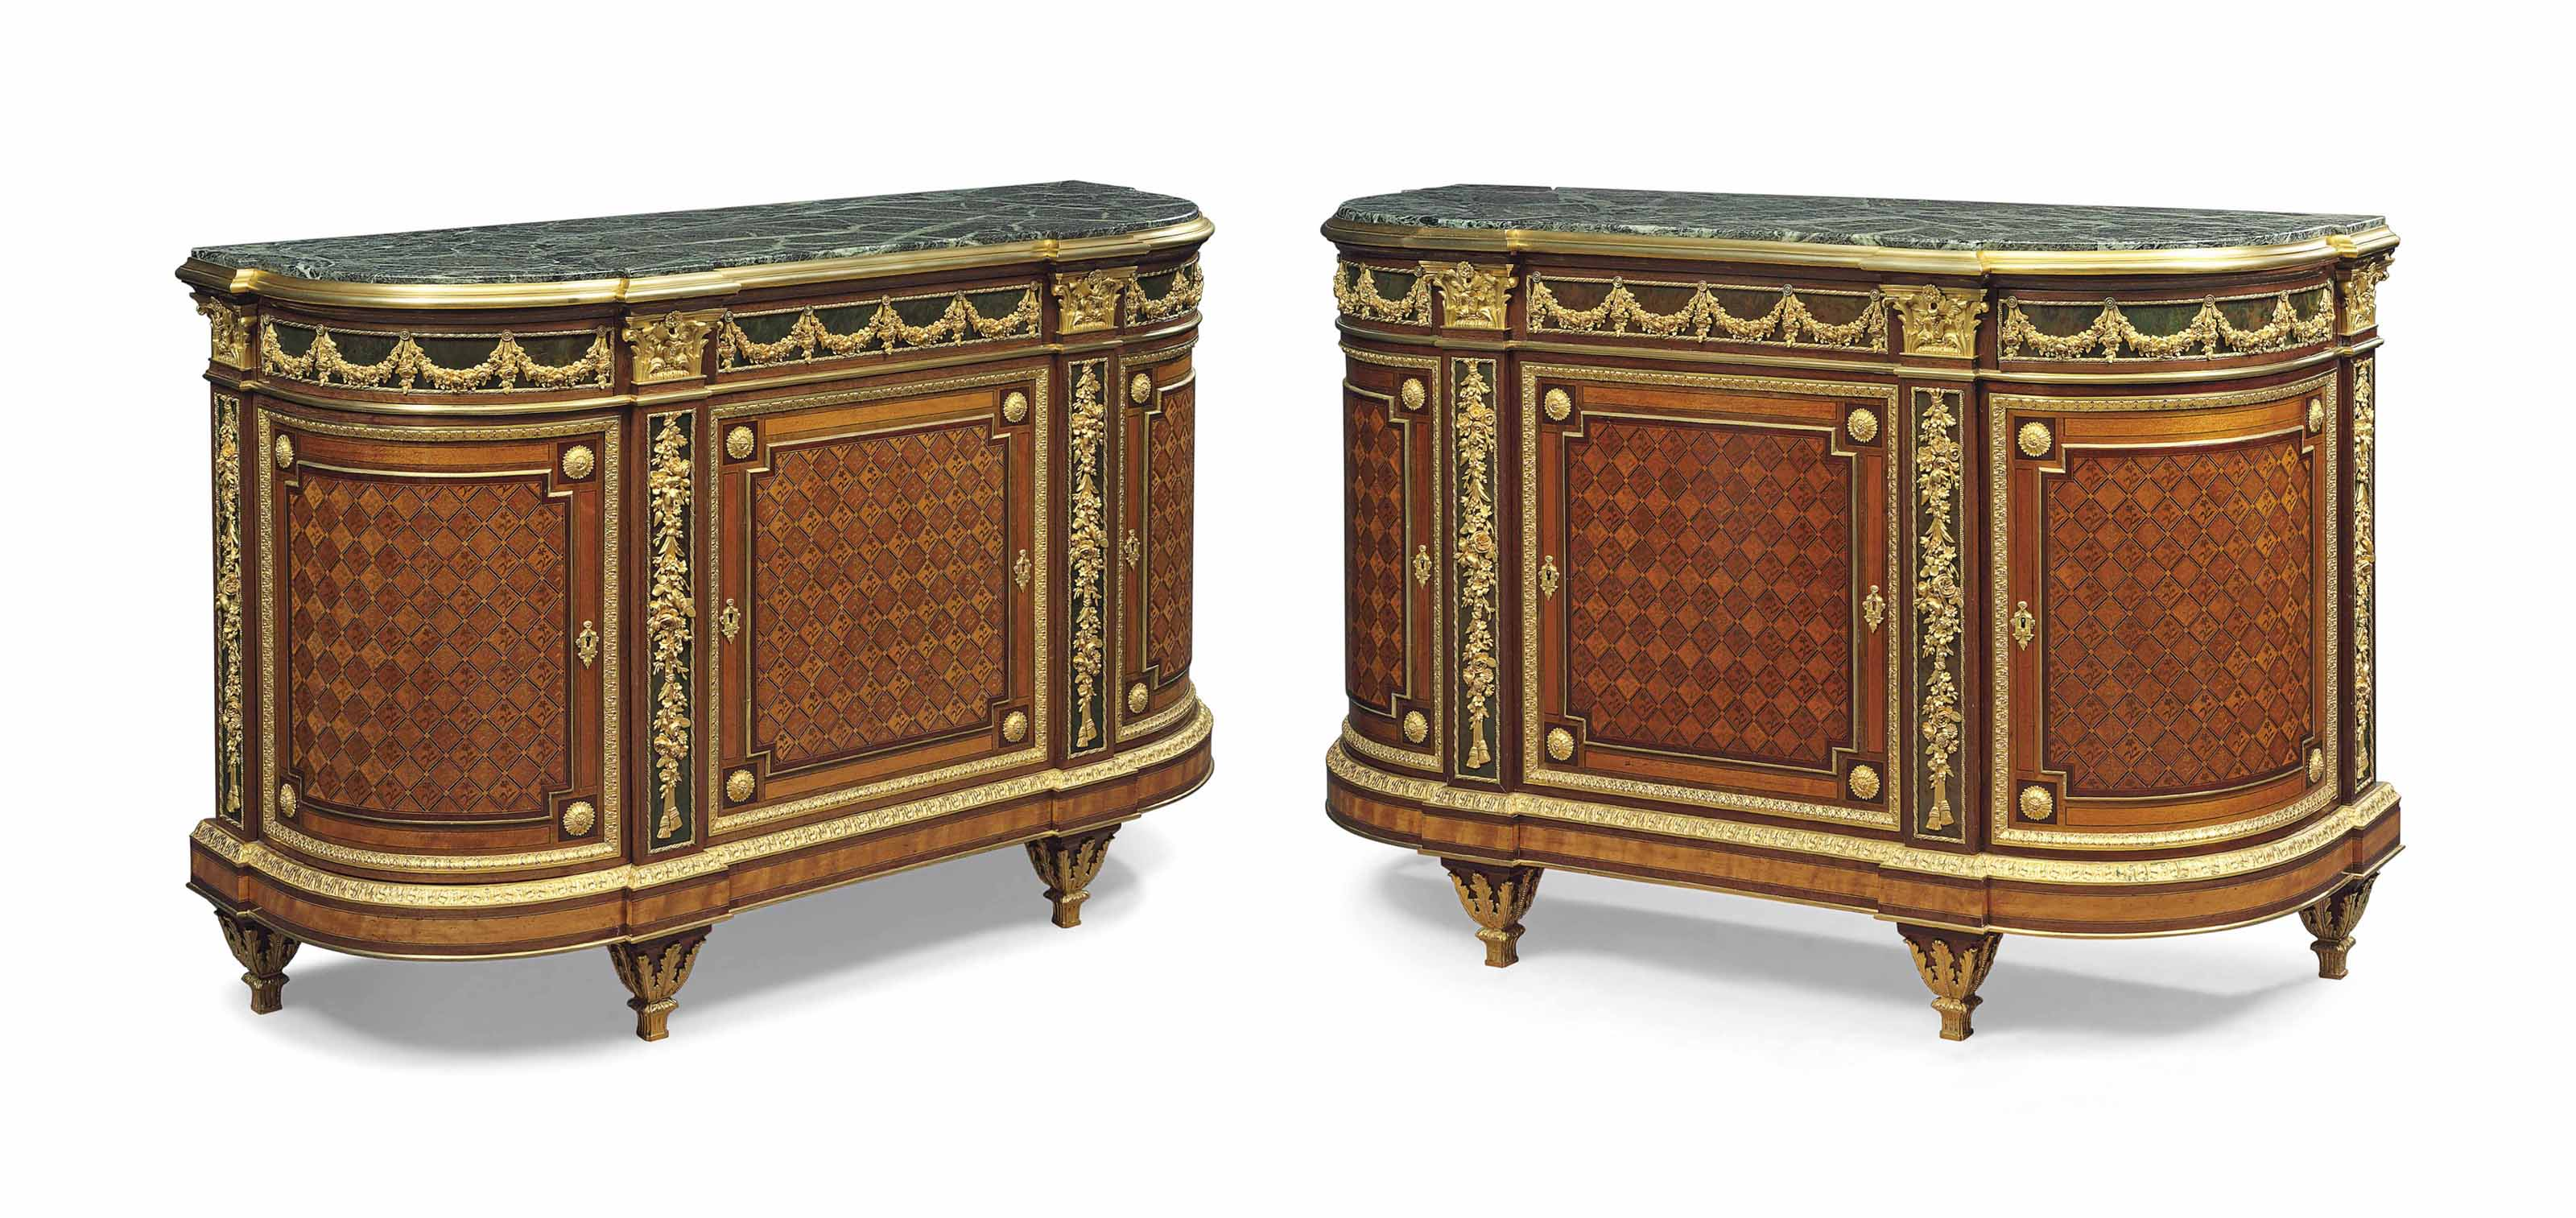 A PAIR OF FRENCH ORMOLU-MOUNTED AMARANTH, MAHOGANY, BOIS SATINÉ, GREEN-STAINED WALNUT AND PARQUETRY SIDE-CABINETS